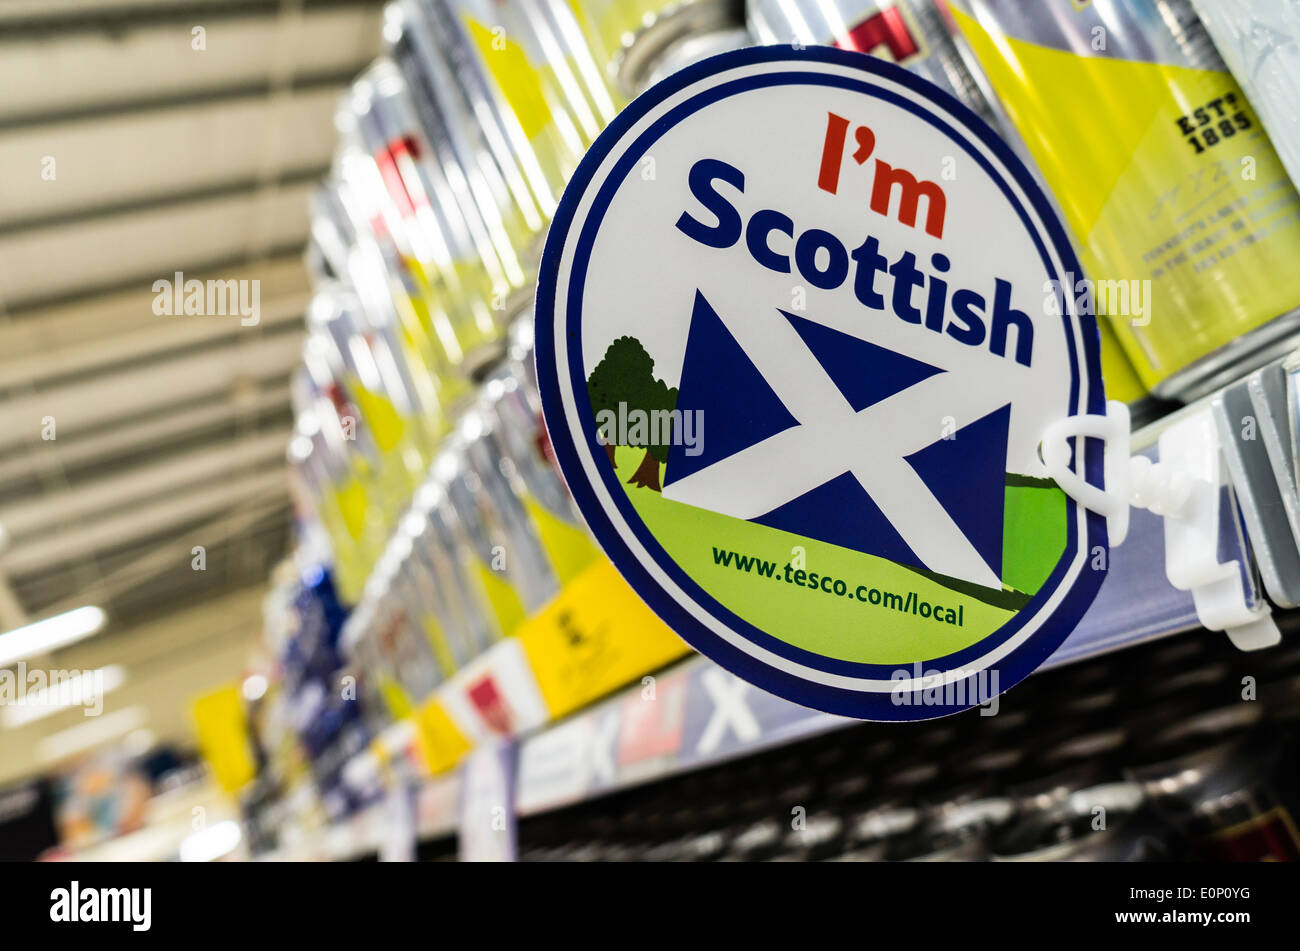 Tesco in Scotland selling Scottish lager beer - playing the local loyalty and support card. Scotland now has minimum pricing for alcohol. - Stock Image